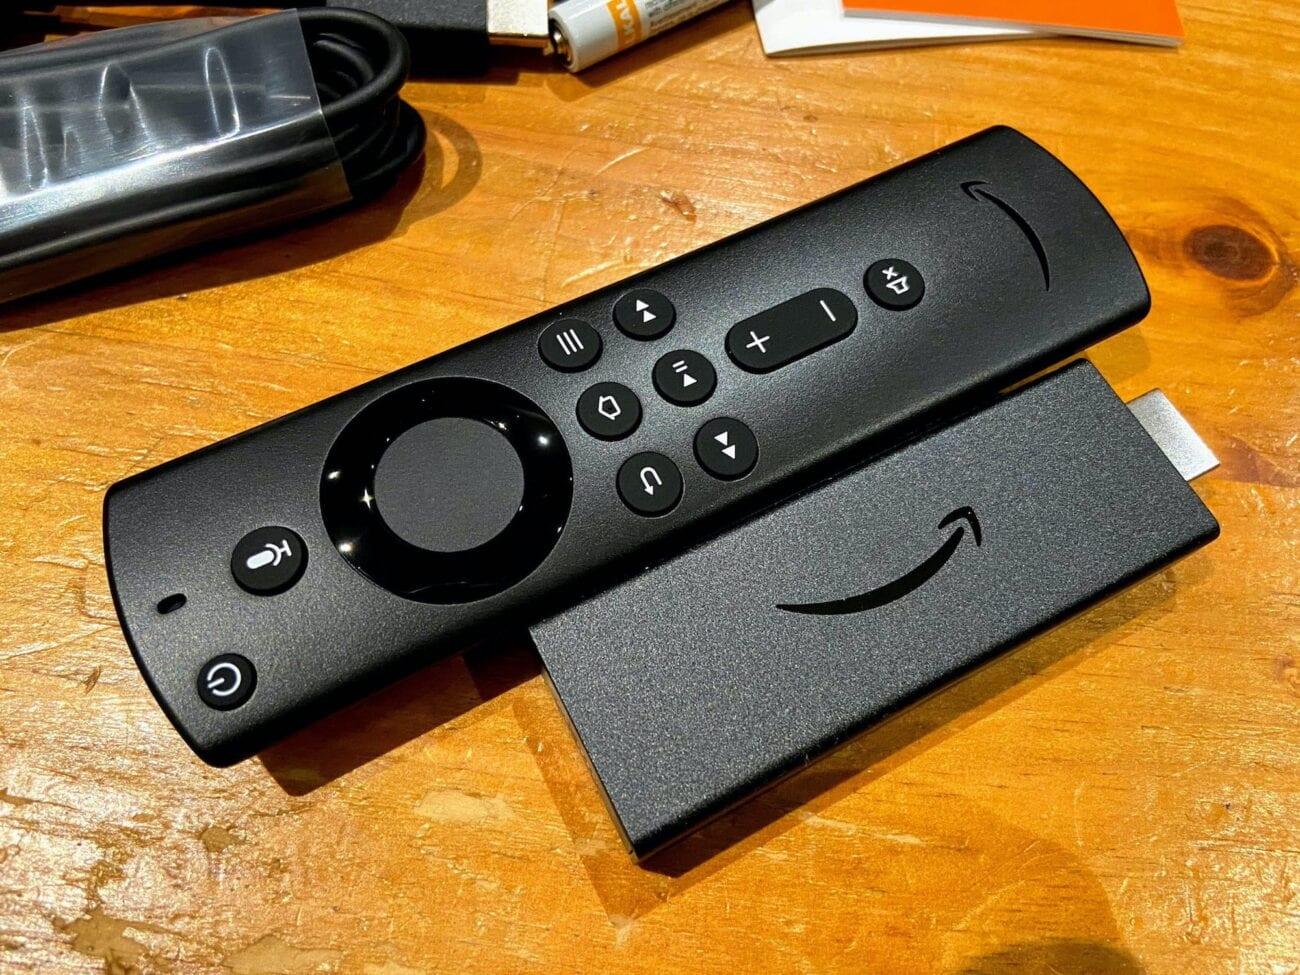 Amazon has unveiled the Firestick Lite for its Amazon Fire TV service. Take a look at everything you need to know about the new Amazon device.